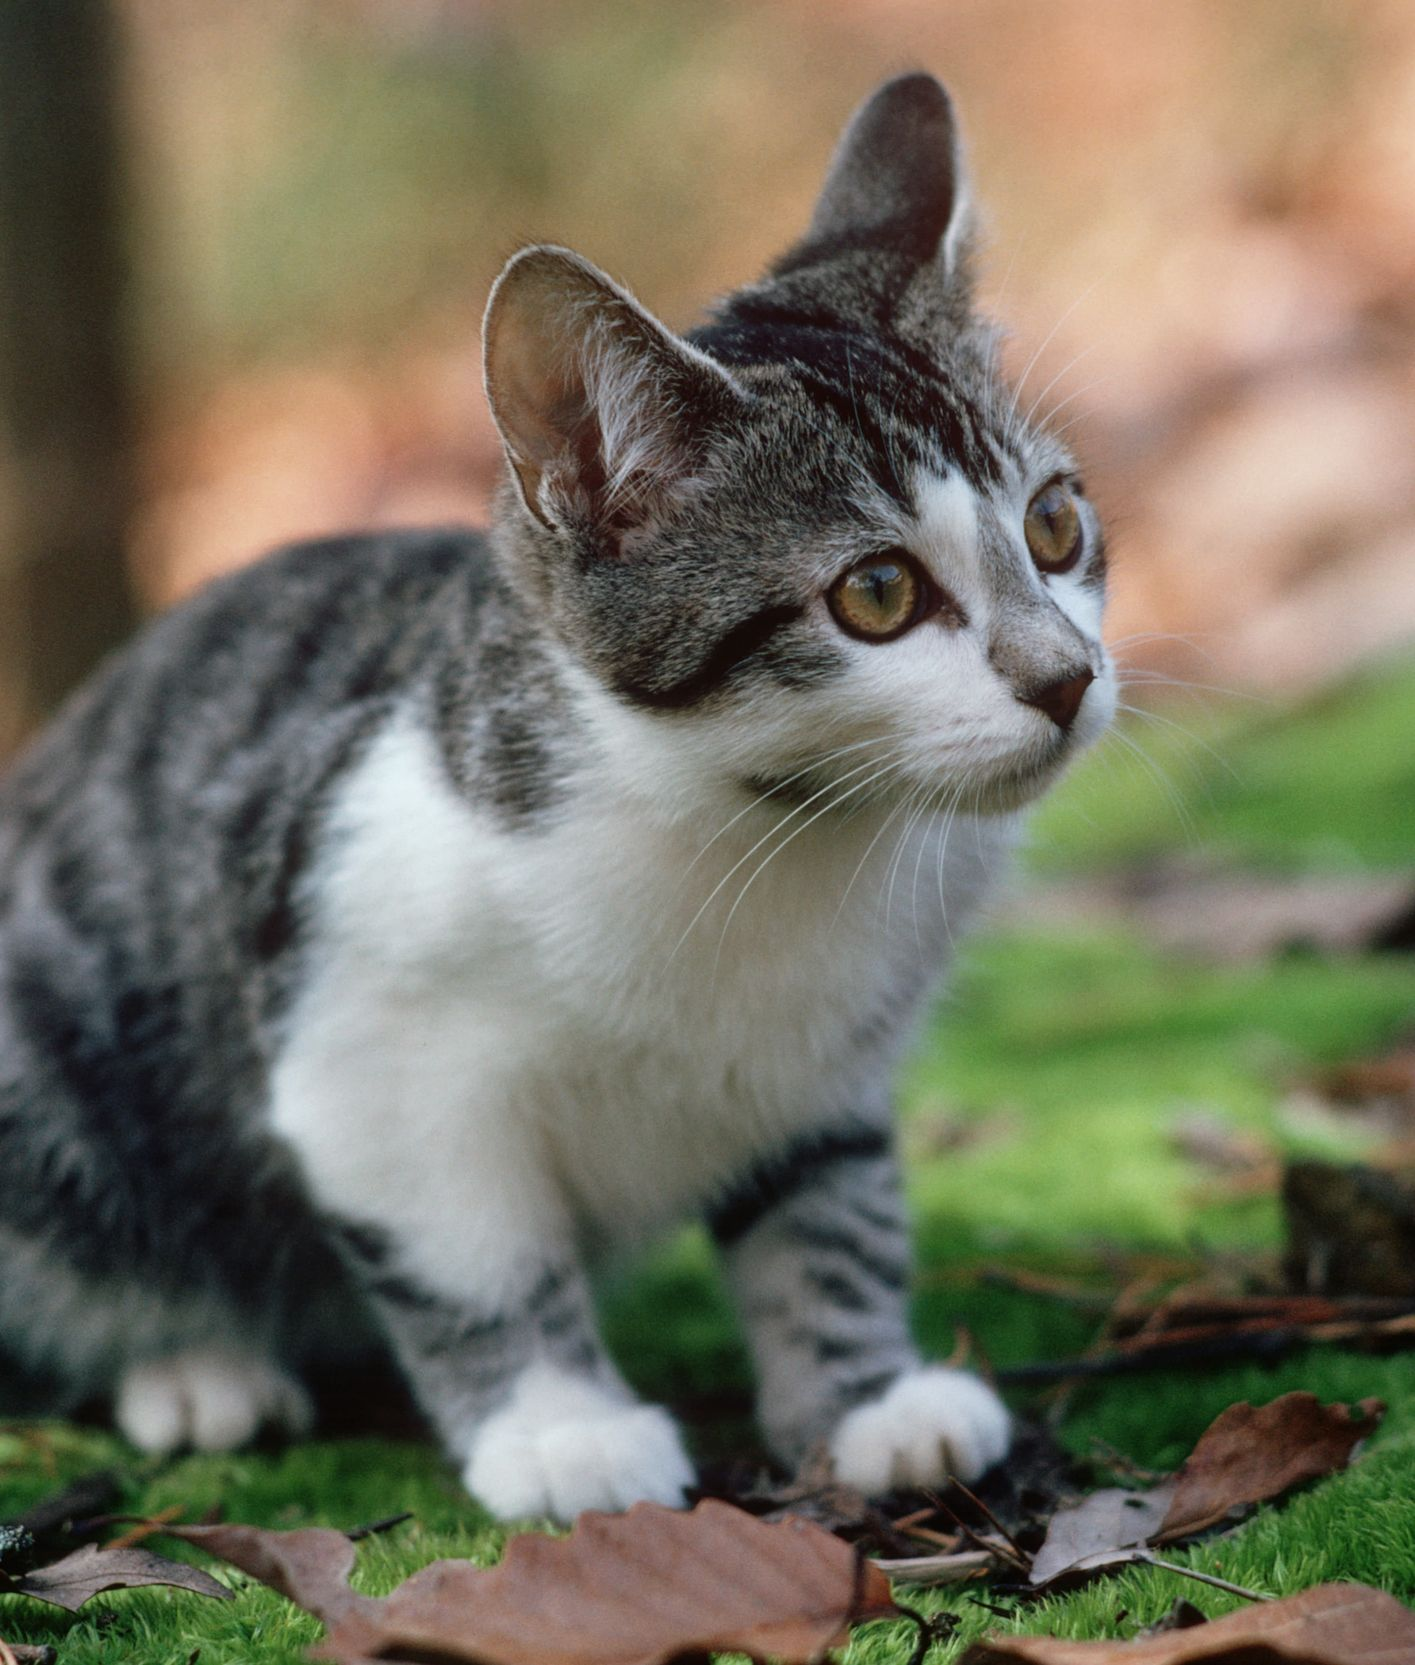 10 Cat Breeds That Love Water (With images) Cat breeds